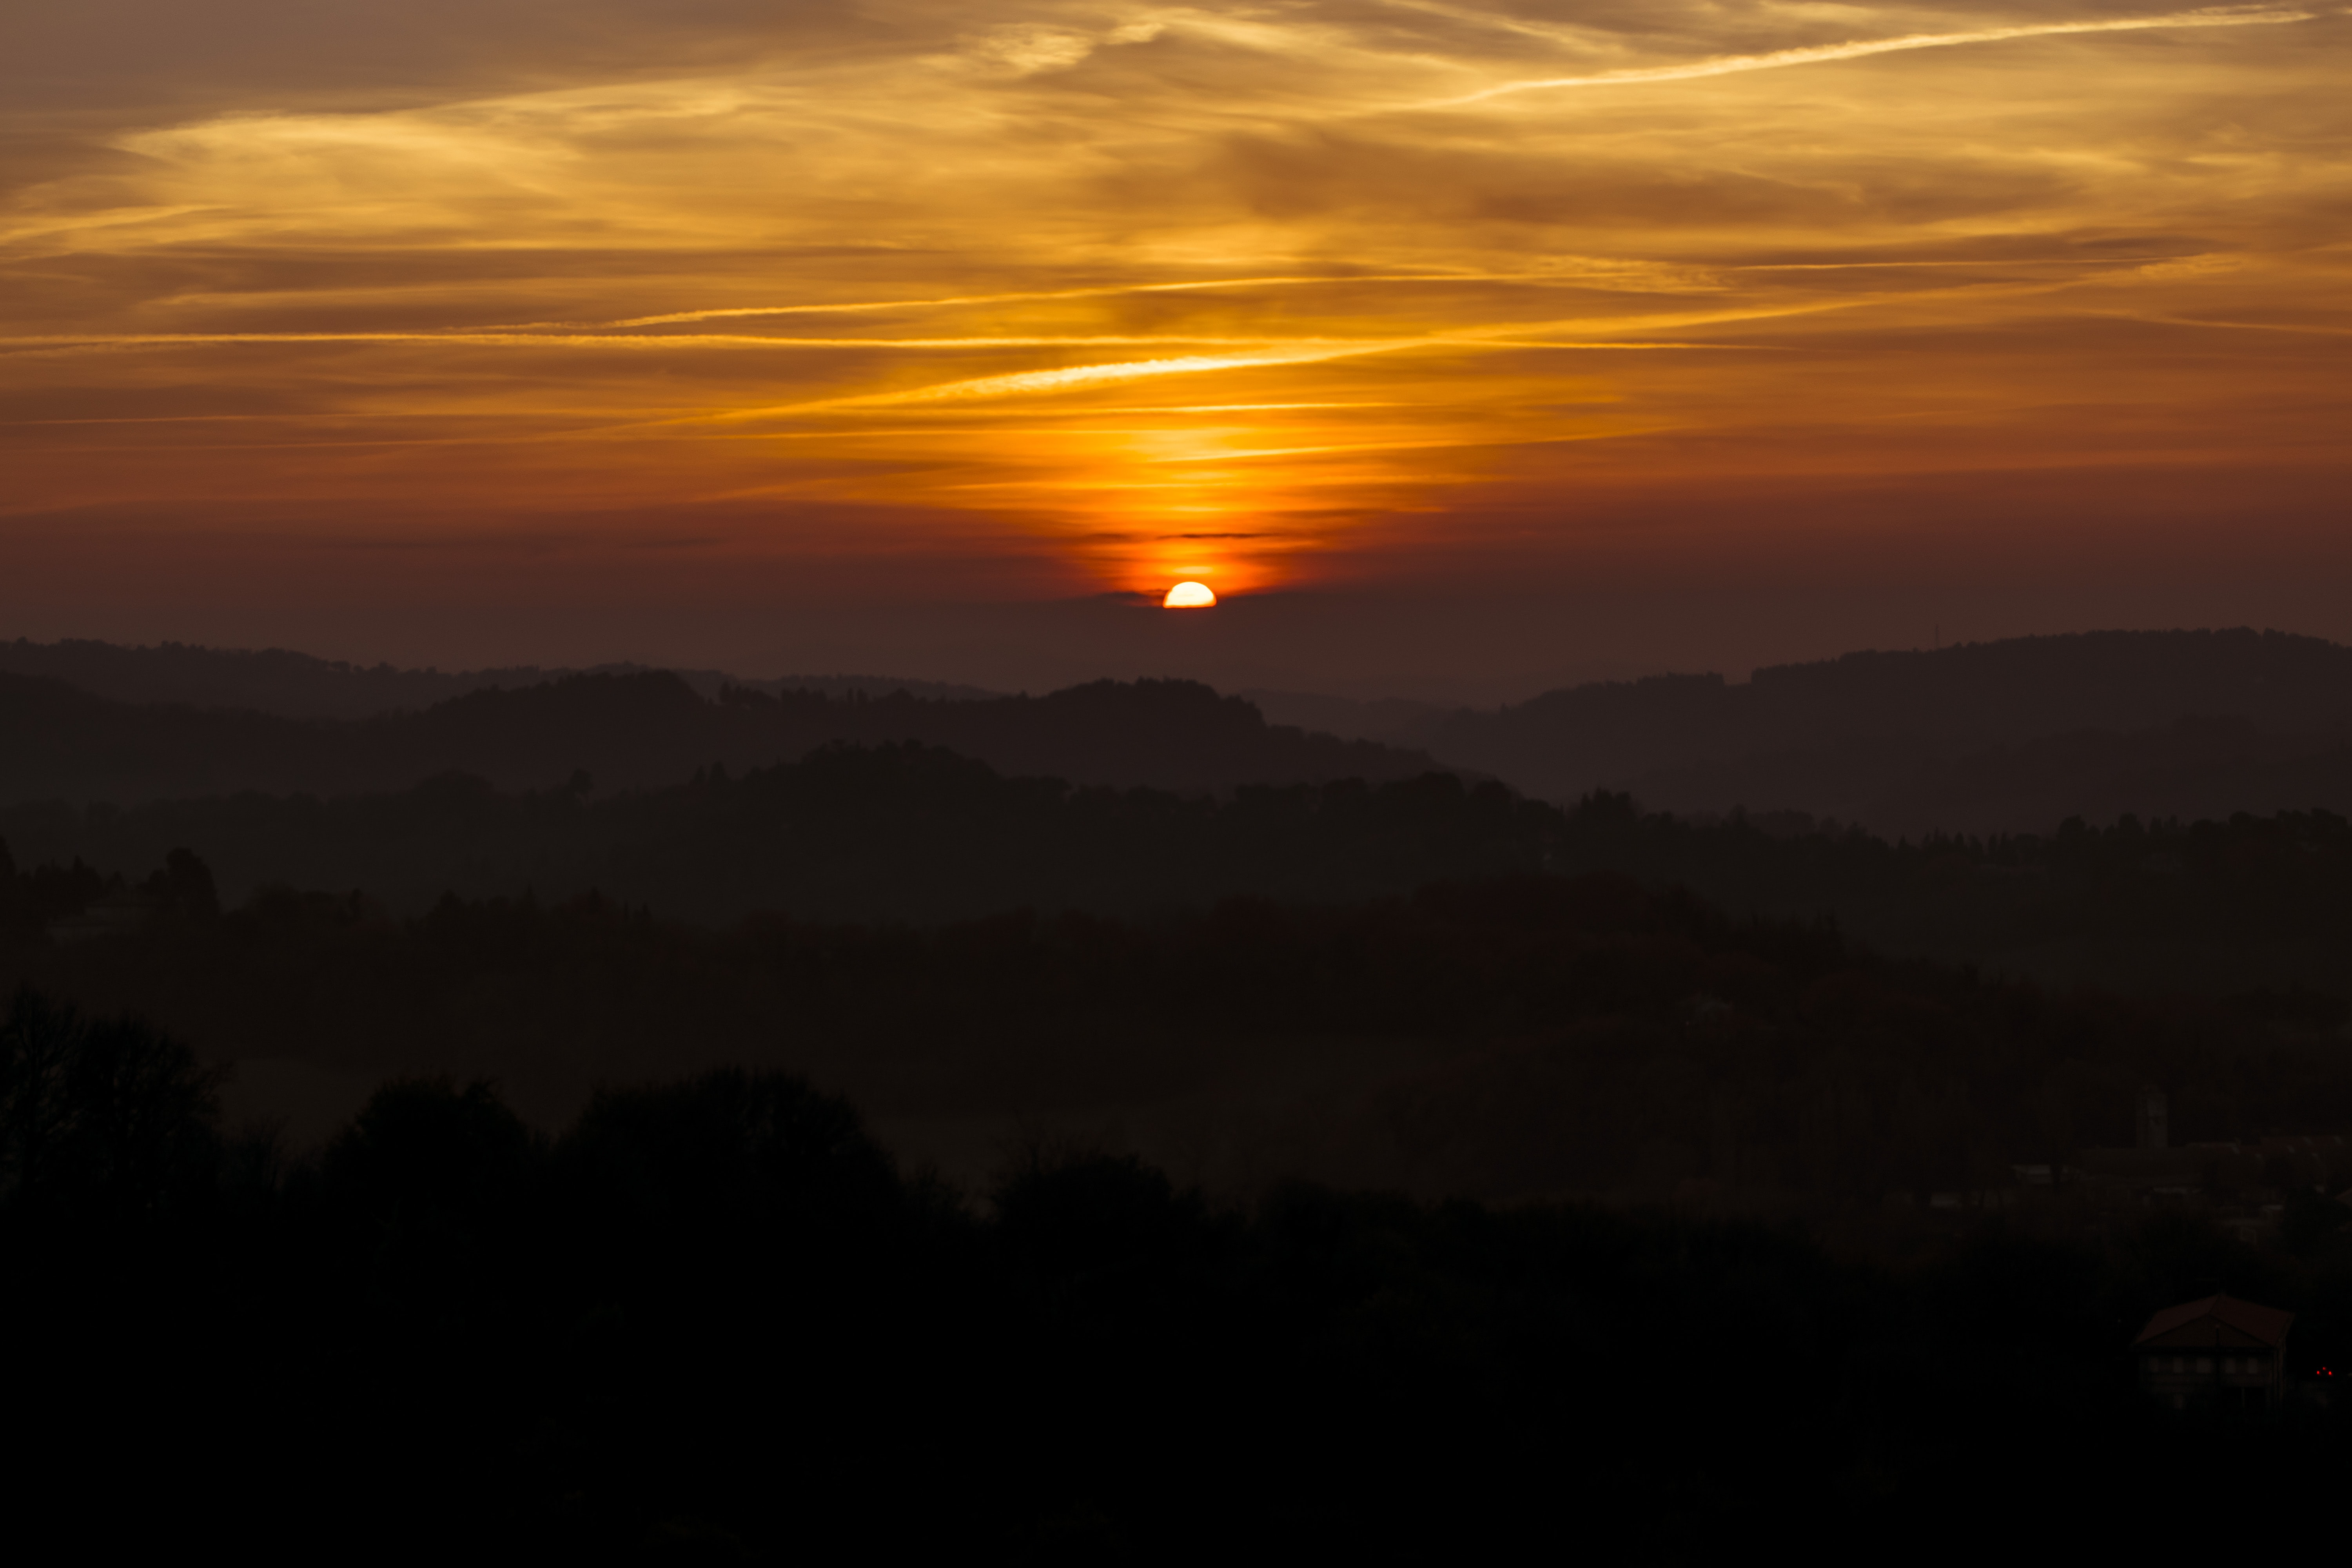 silhouette of mountains on sunset